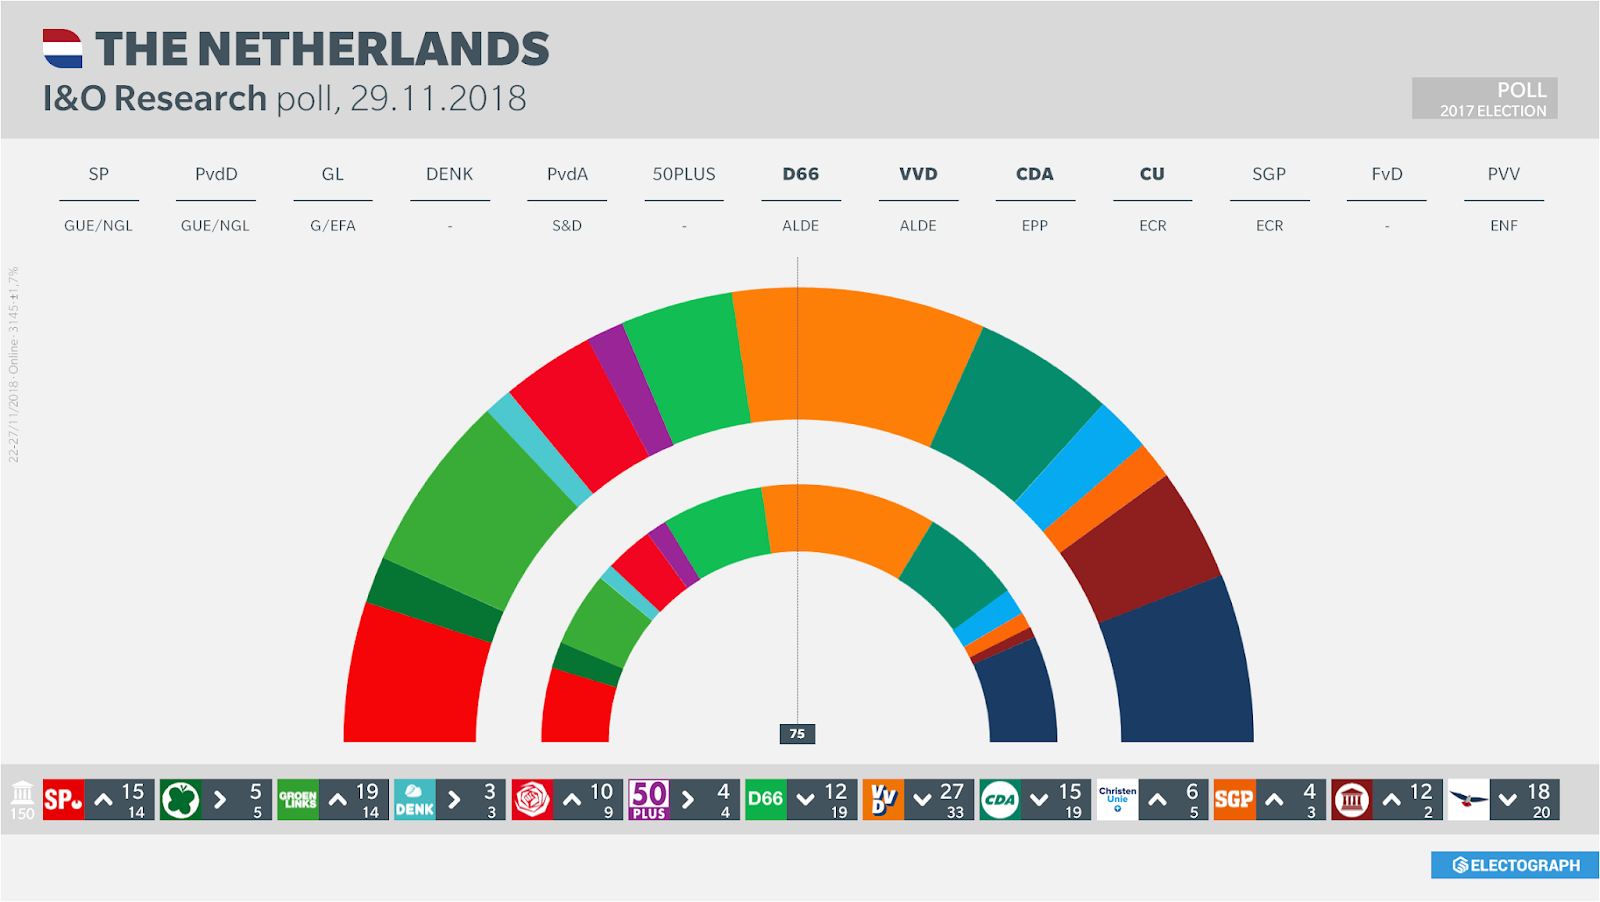 THE NETHERLANDS: I&O Research poll chart, 29 November 2018